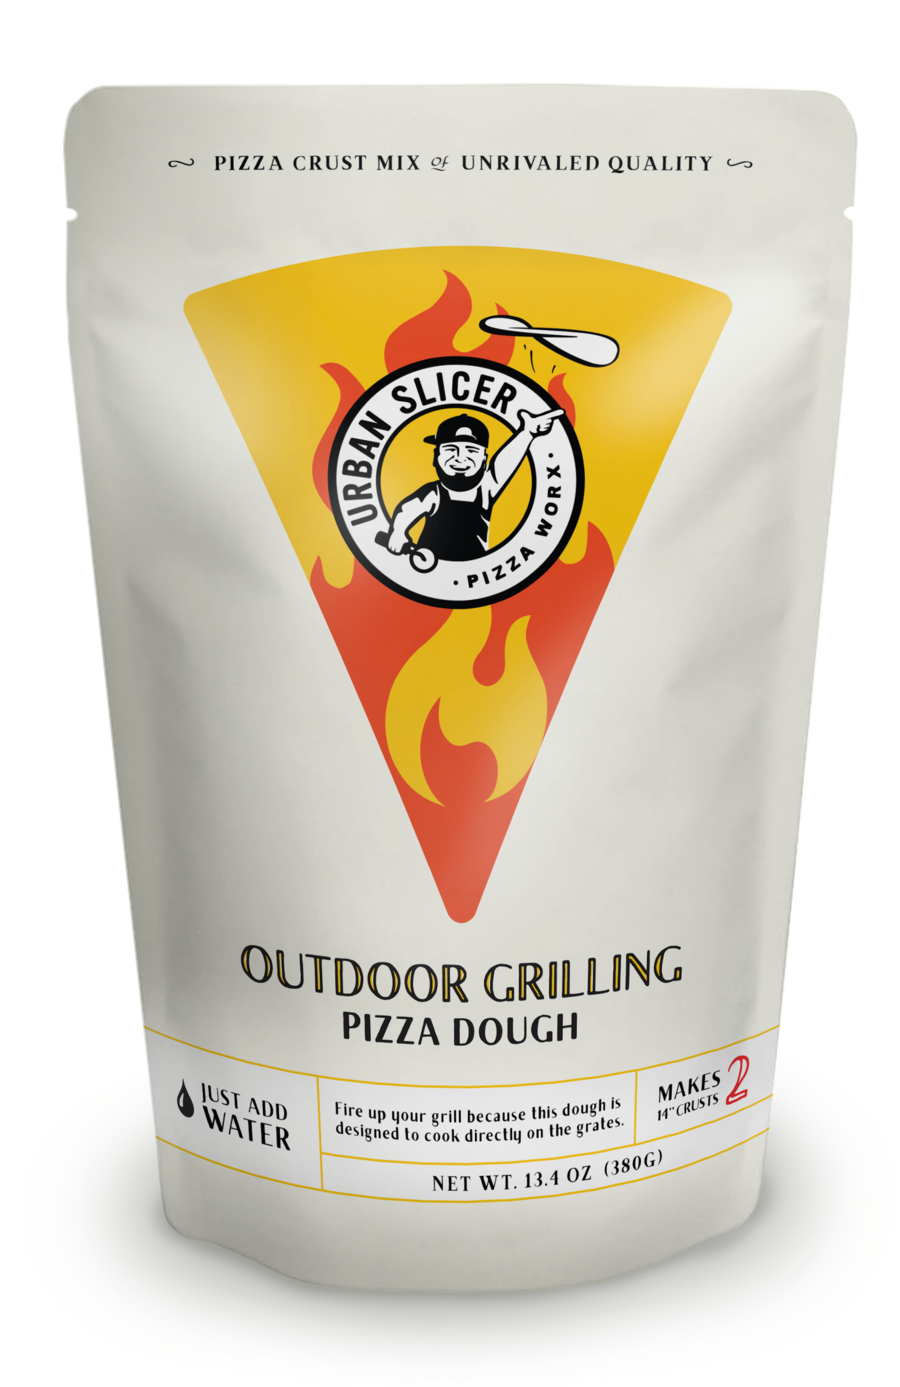 Urban Slicer Grilling Pizza Dough Mix